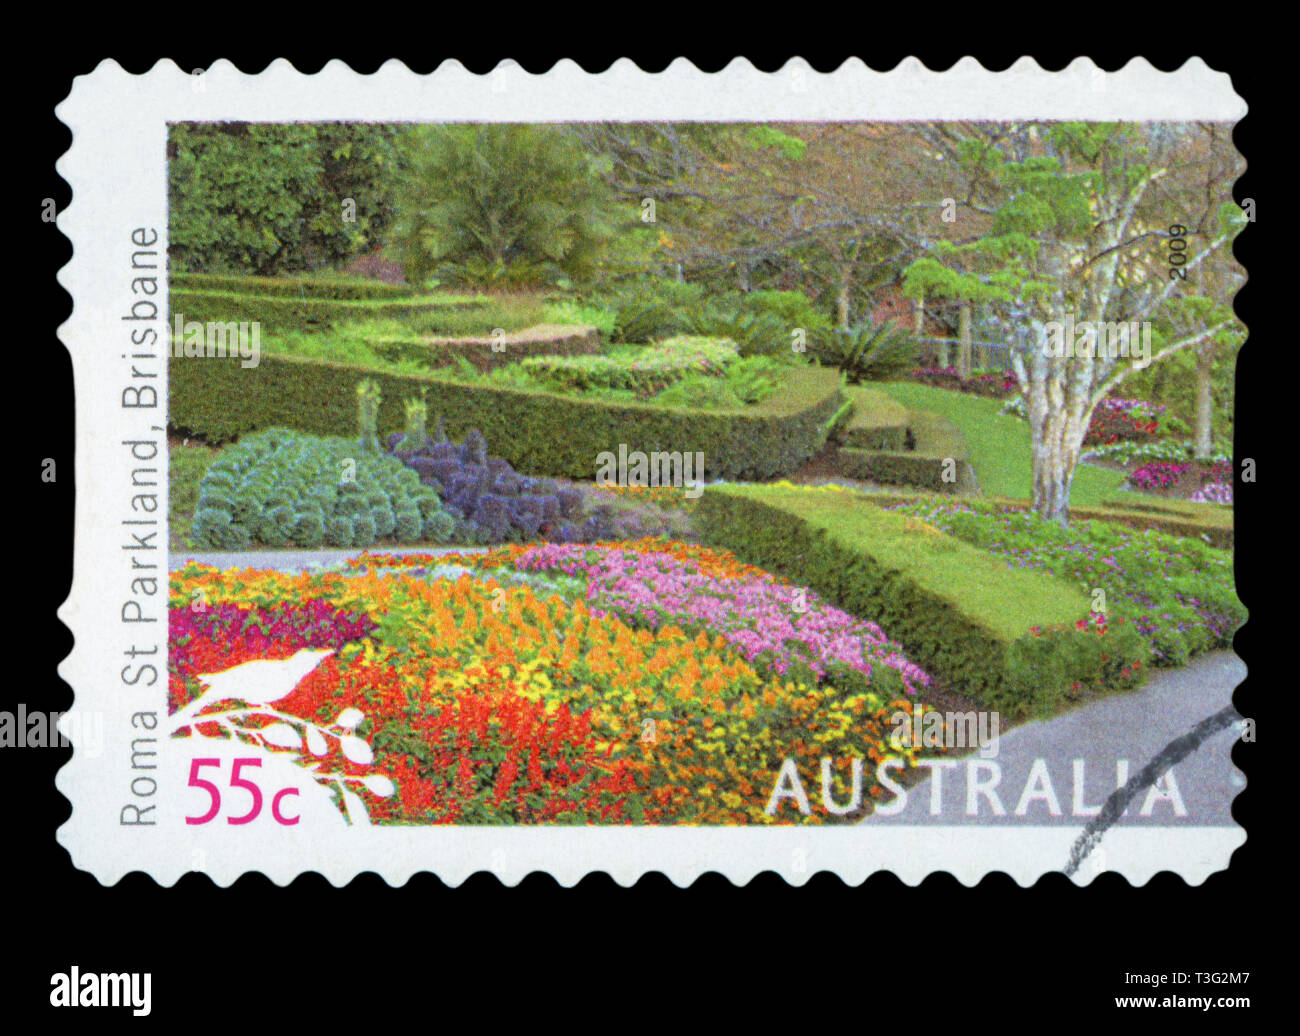 AUSTRALIA - CIRCA 2009: A used postage stamp from Australia, depicting an image of Roma Street Parkland in Brisbane, circa 2009. - Stock Image